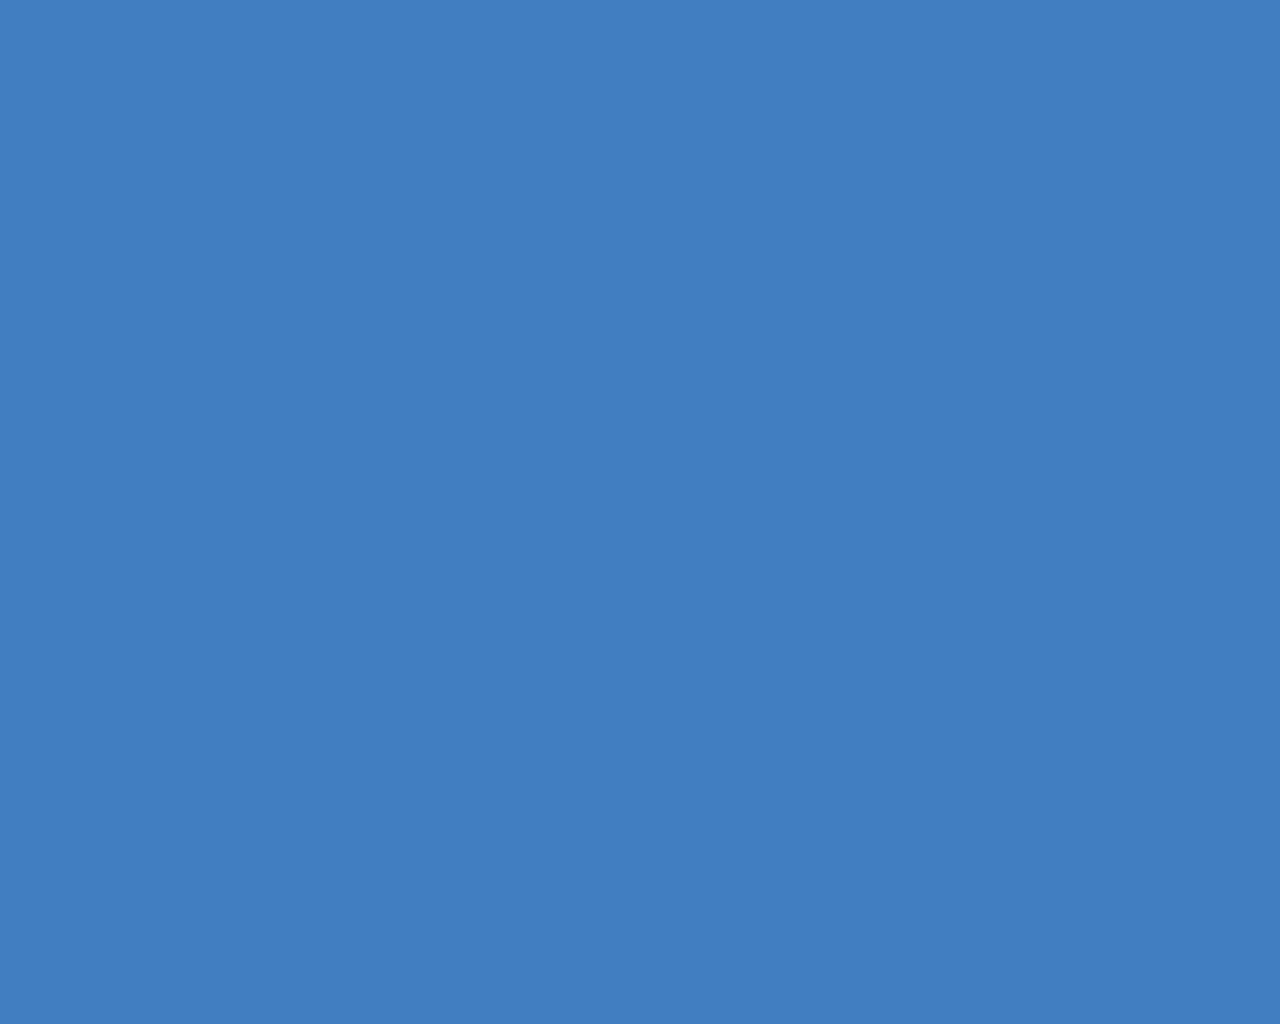 1280x1024 Tufts Blue Solid Color Background